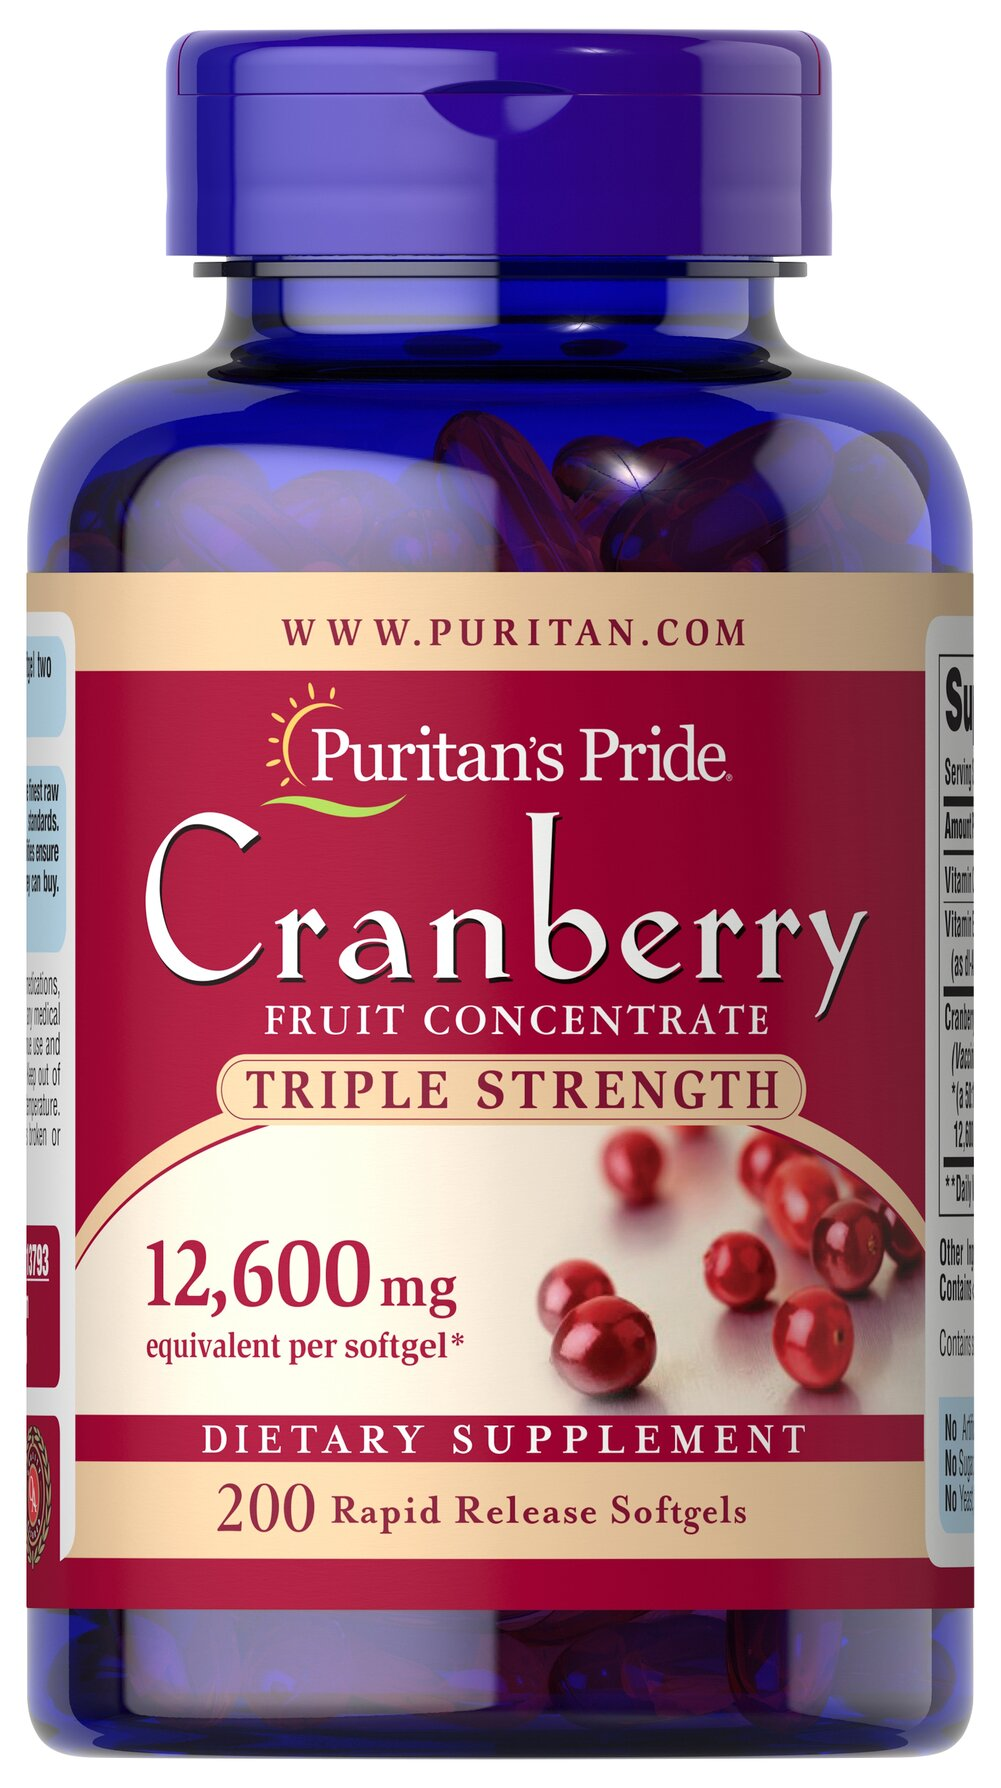 Triple Strength Cranberry Fruit Concentrate 12,600 mg <p>Supports Urinary and Immune System Health**</p><p>Triple Strength Cranberry Concentrate contains 12,600 mg of cranberry concentrate per serving.</p><p>Cranberries  contain the nutritional benefits of proanthocyanidins.** This product  also contains Vitamin C, an antioxidant that plays a role in supporting  immune function, plus Vitamin E.**</p><br /> 200 Softgels 12600 mg $23.99